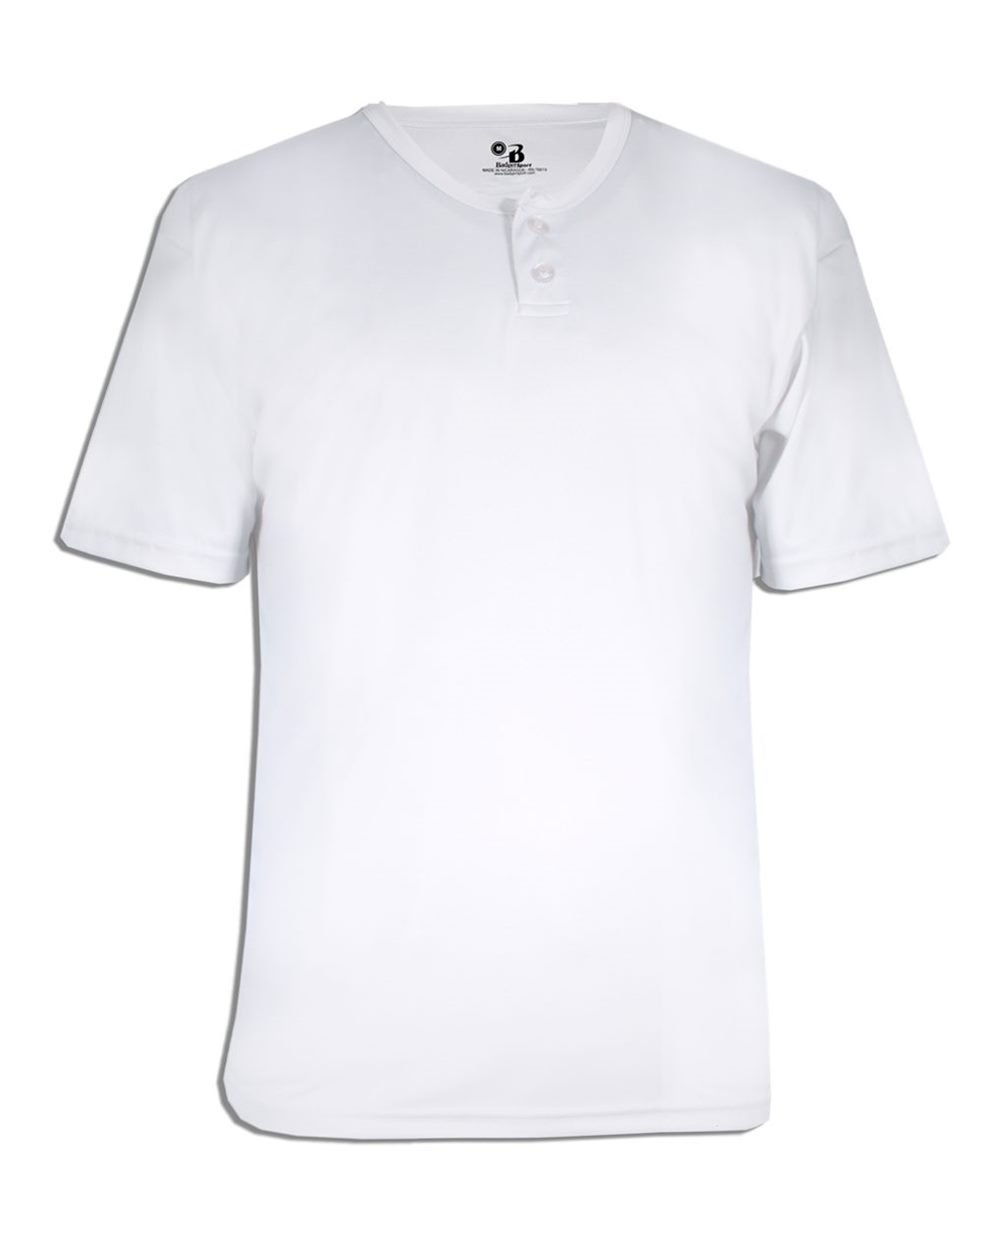 Badger B-Core Adult Placket Jersey, White, X-Large